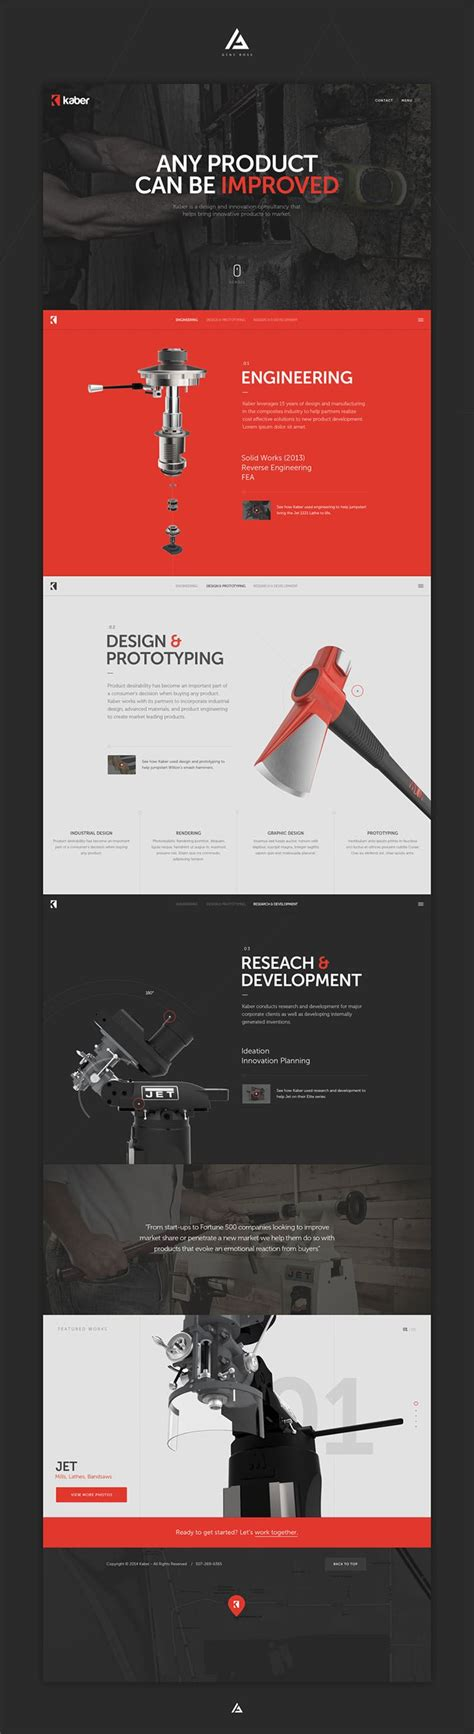 design web inspiration 20 clean web design inspiration 2015